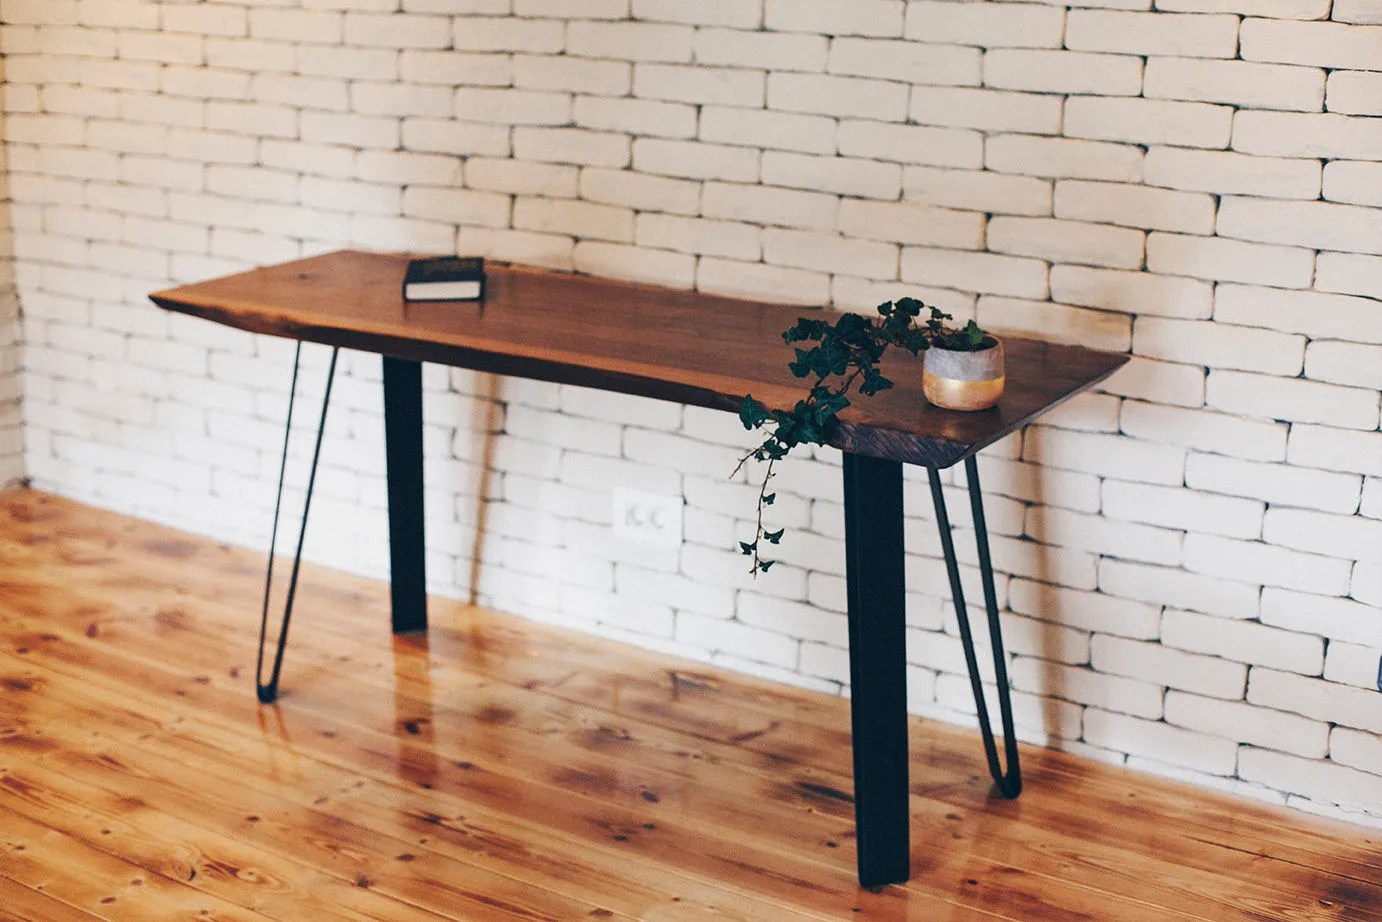 Long Wood Desk Reclaimed Wood Furniture Live Edge Desk Living Room Table Rustic Desk Dorm Furniture Wooden Decor Walnut Desk Live Edge Furniture